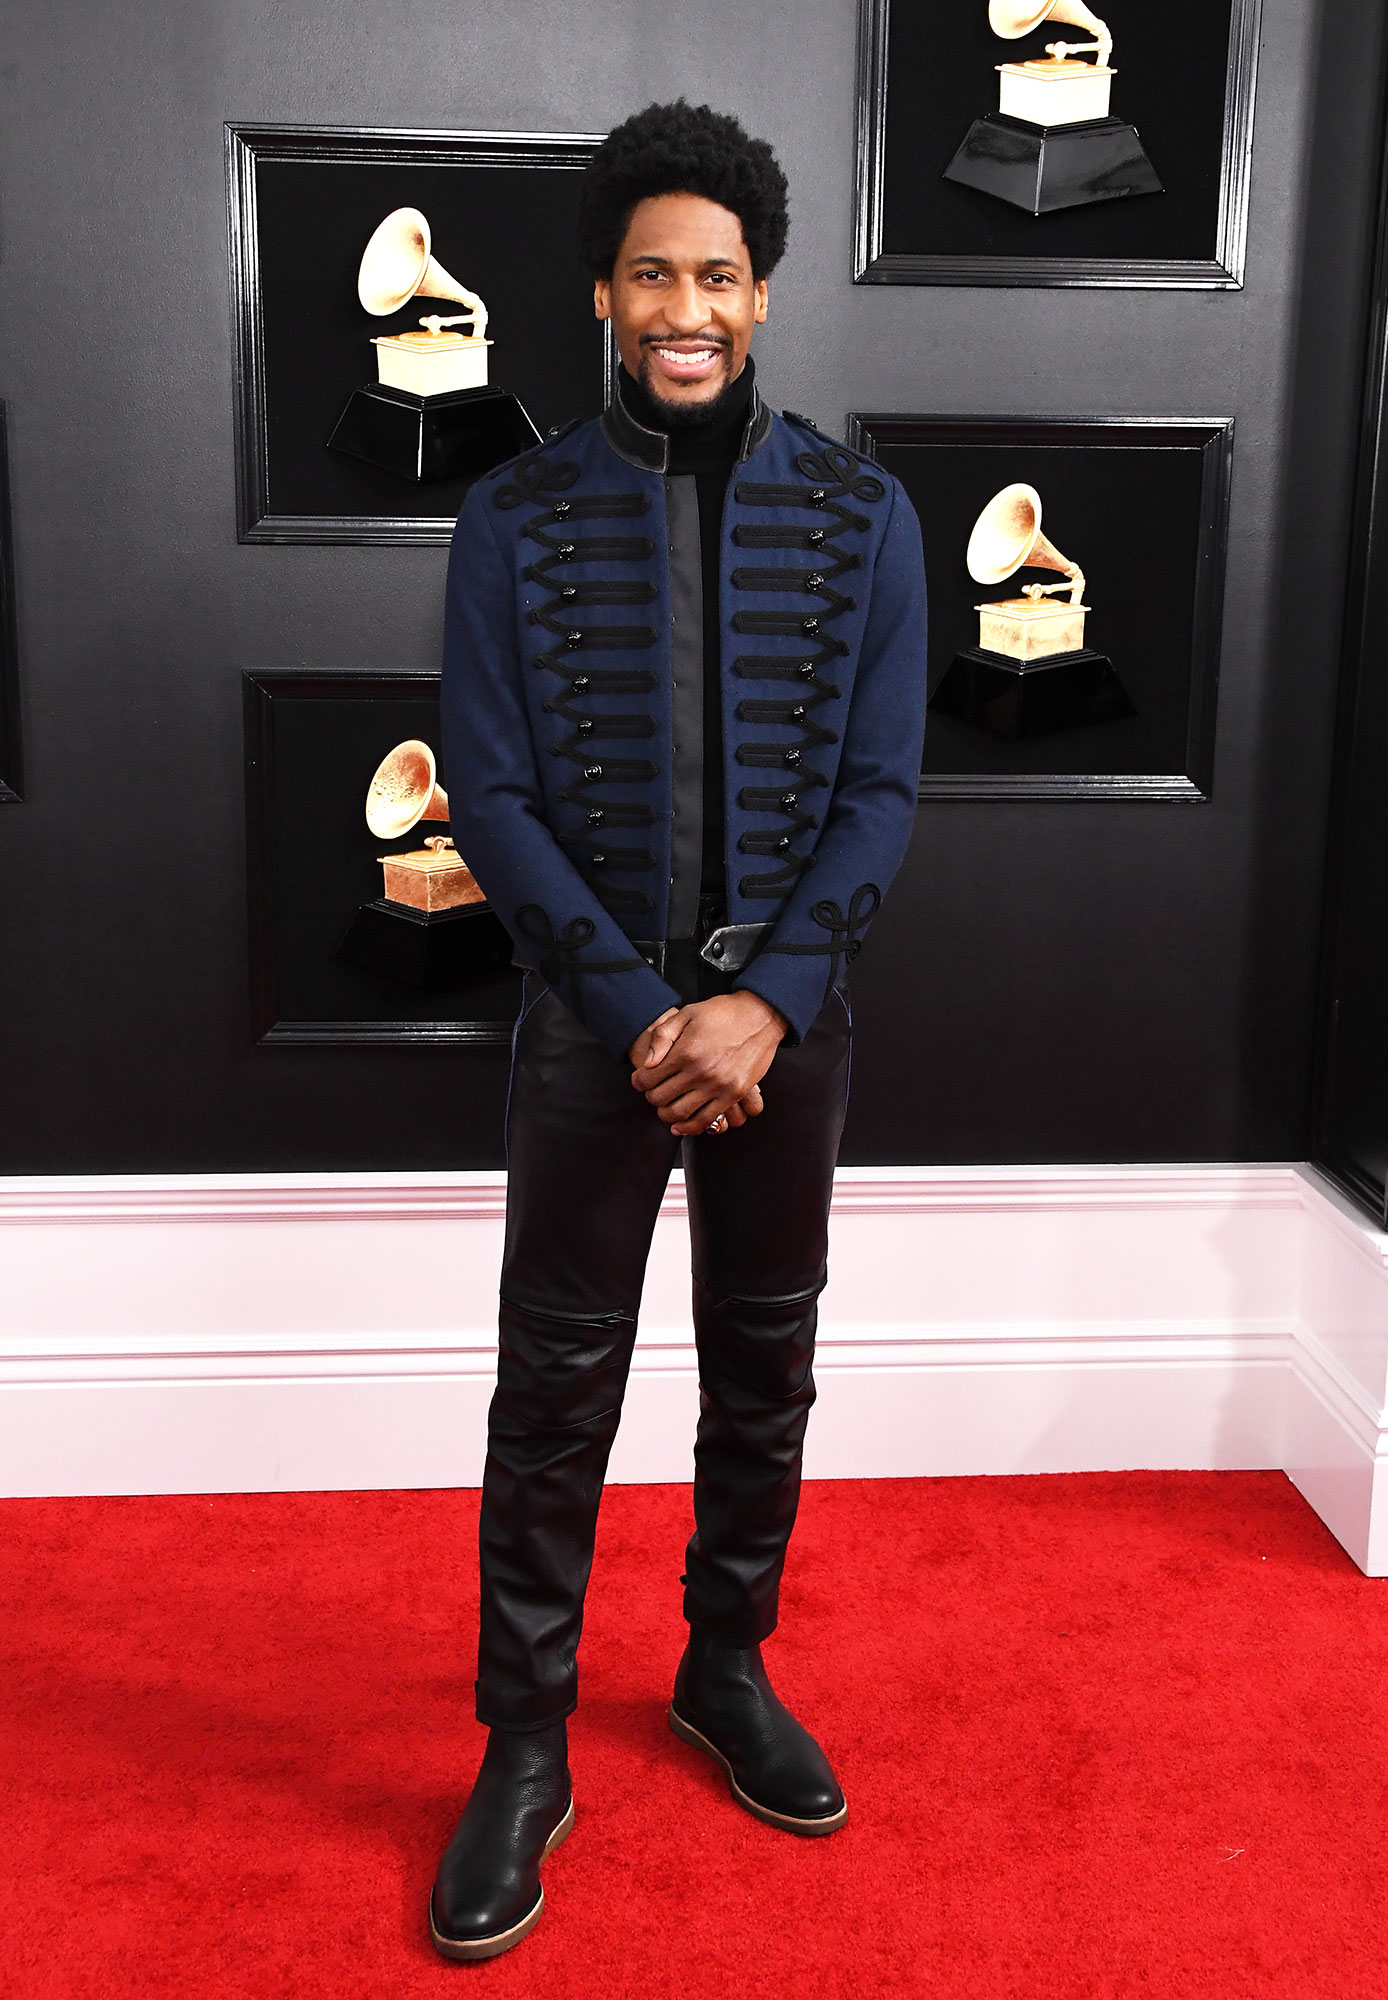 grammys 2019 Jon Batiste - The Grammy nominee kept things cool in a Sgt. Pepper-inspired Coach jacket.